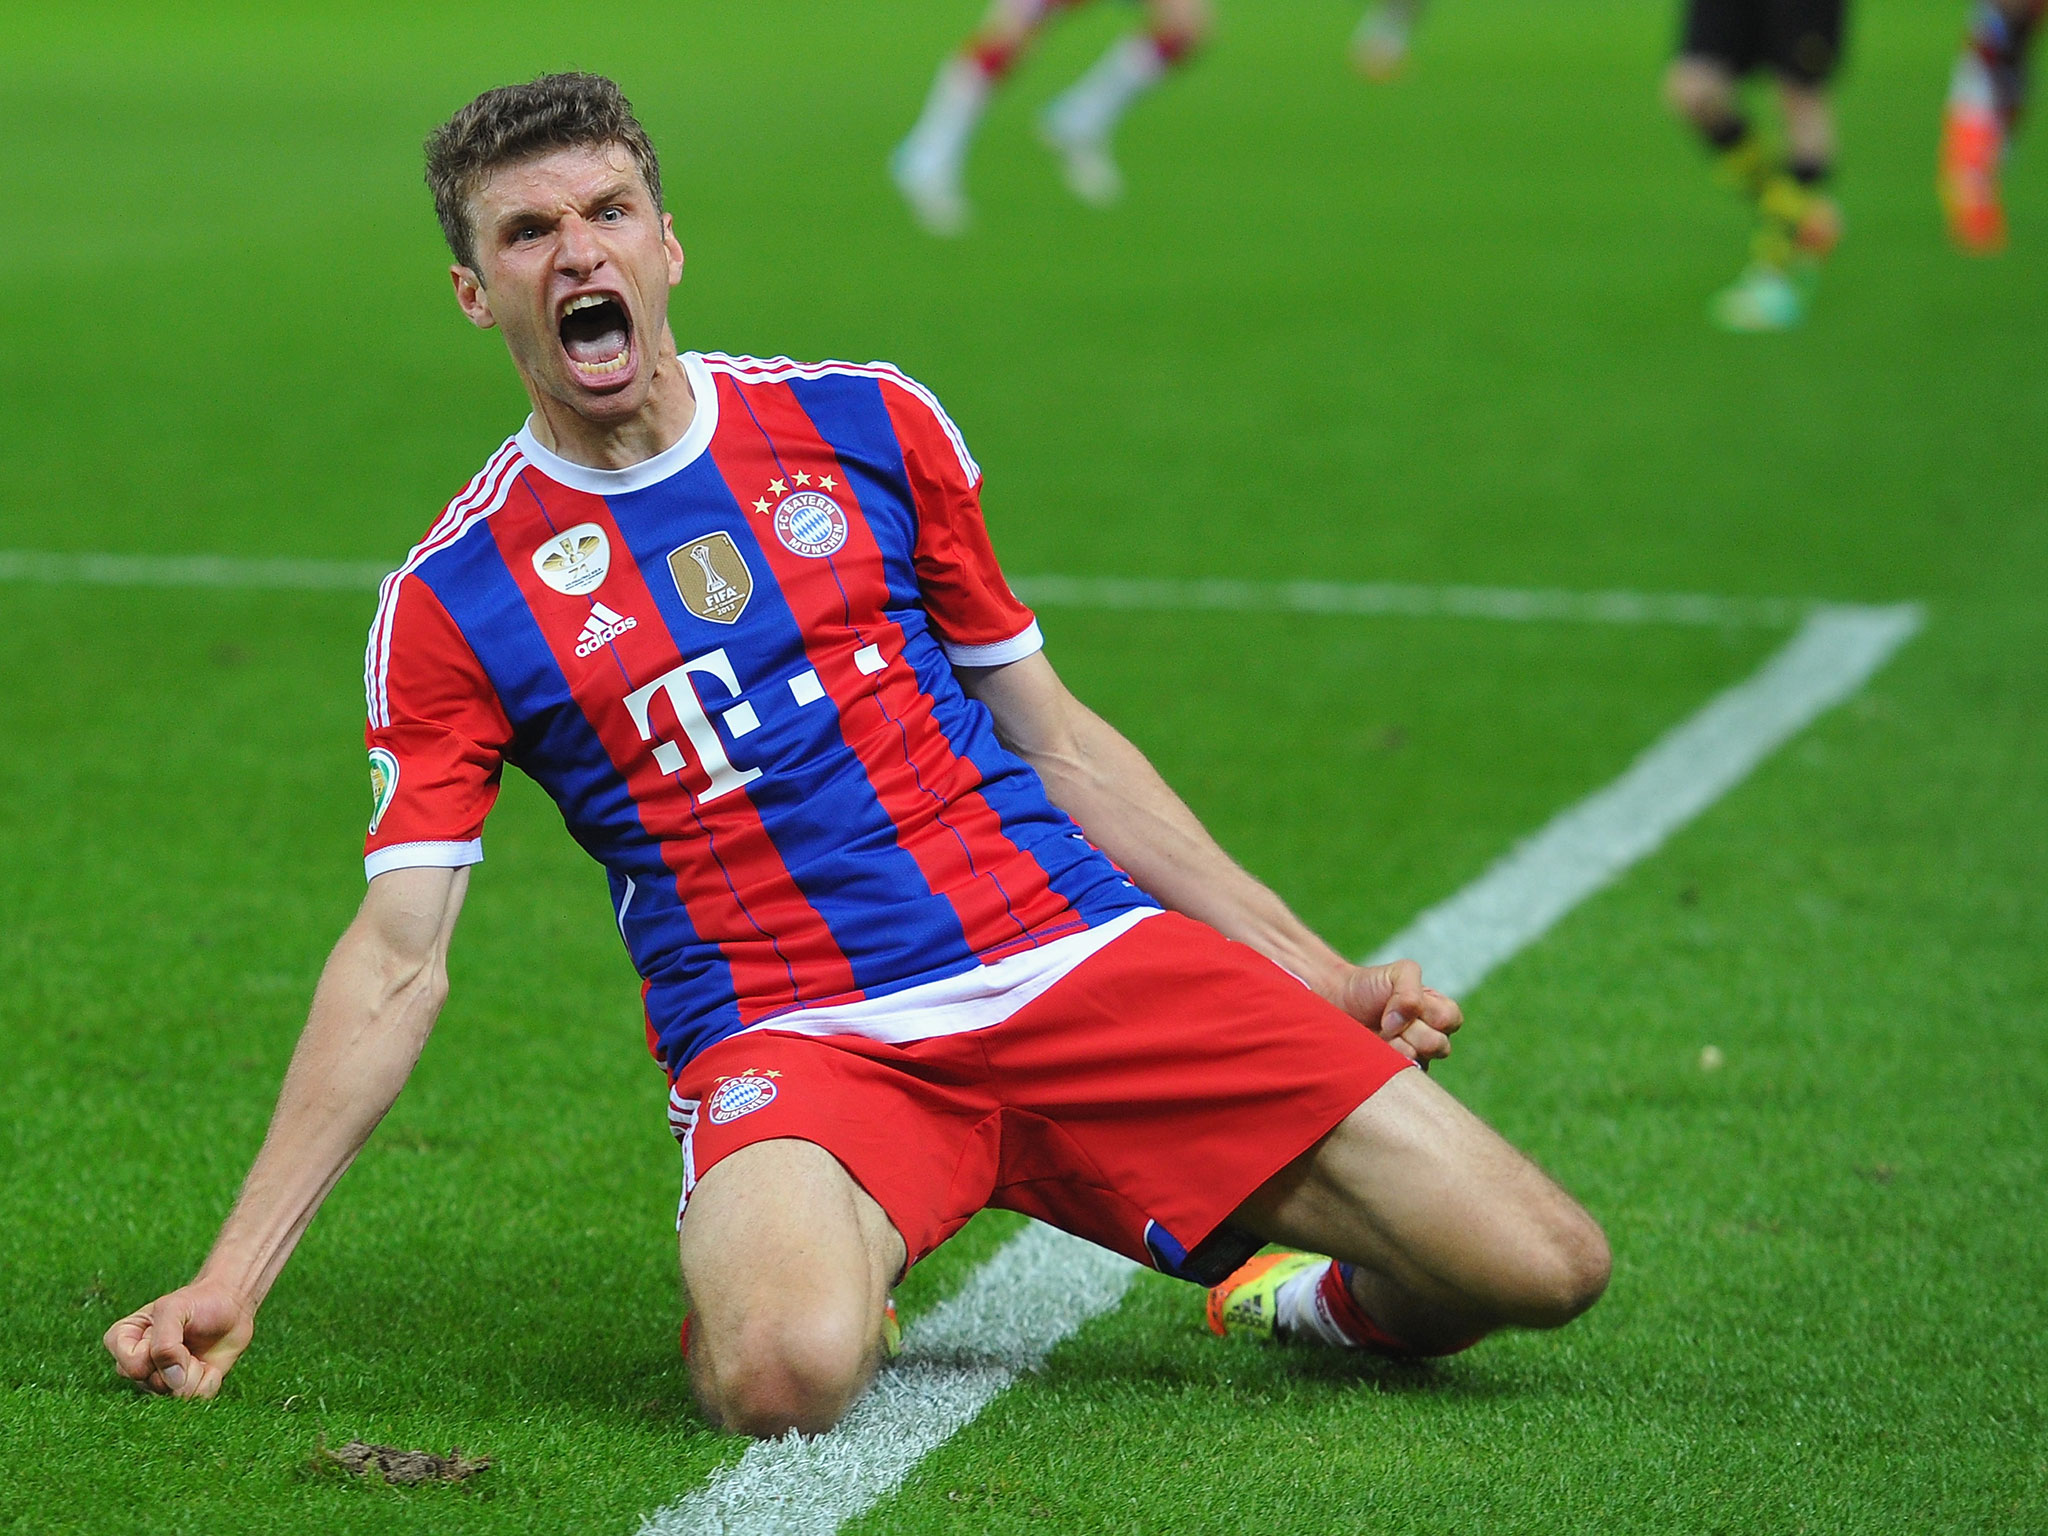 thomas muller on Scratch